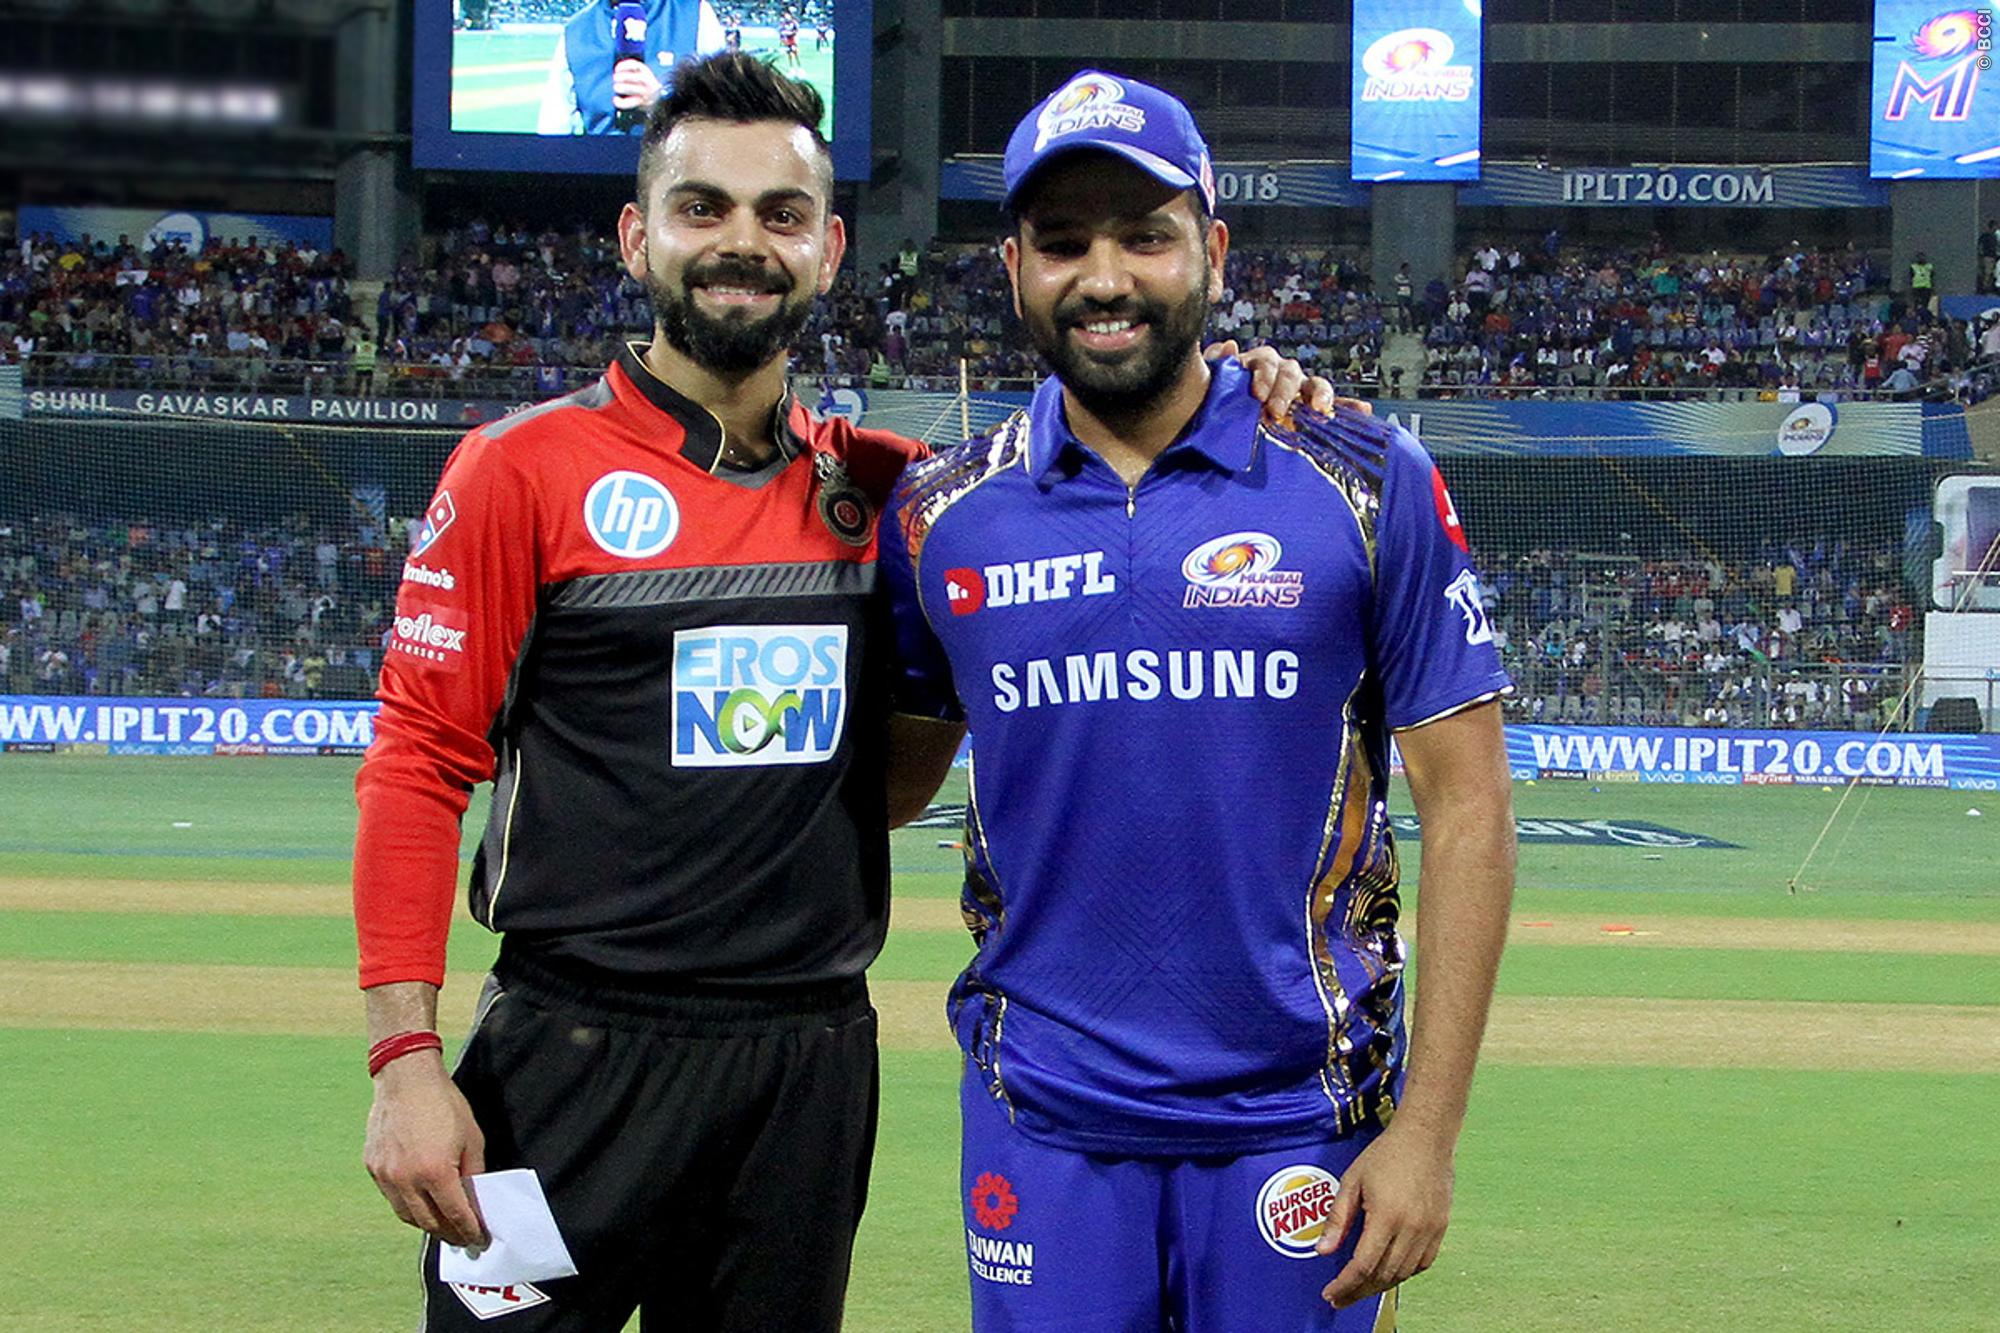 Match Preview: Mumbai Indians v Royal Challengers Bangalore